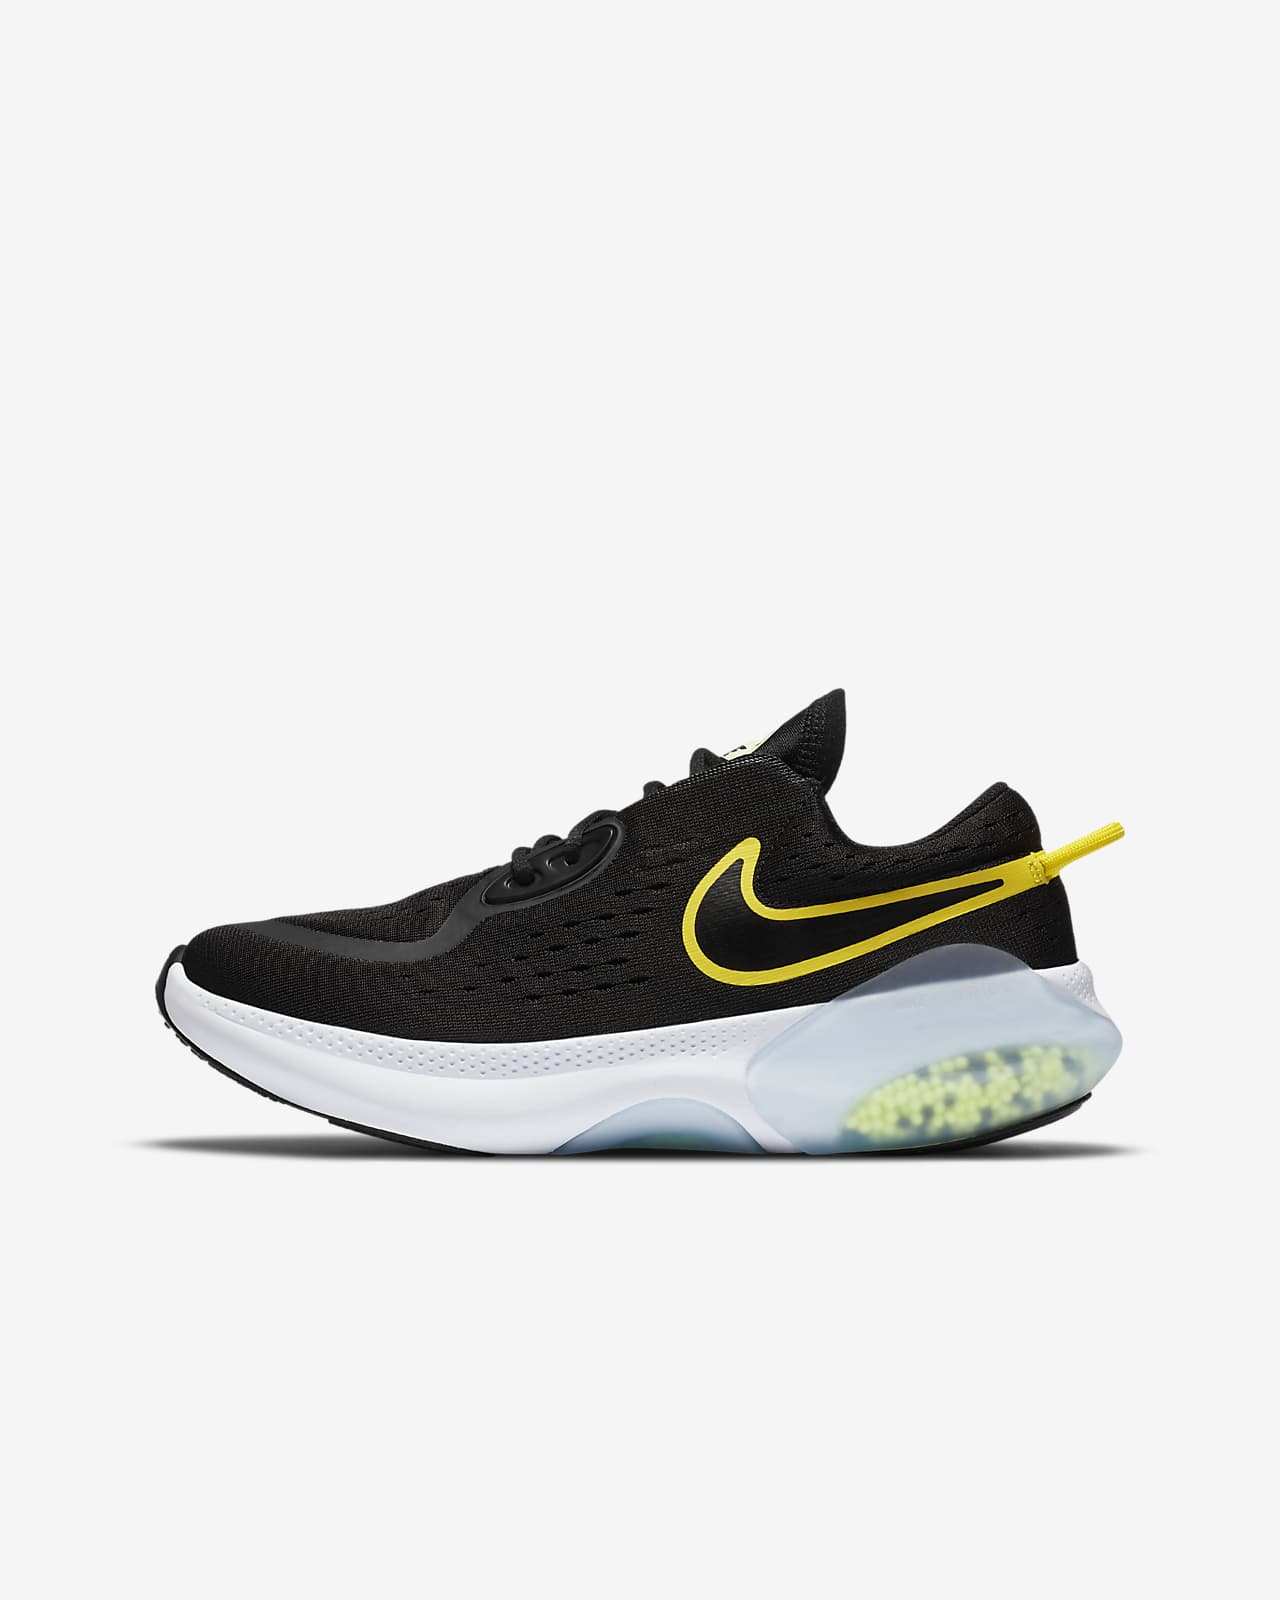 Nike Joyride Dual Run Big Kids' Running Shoe